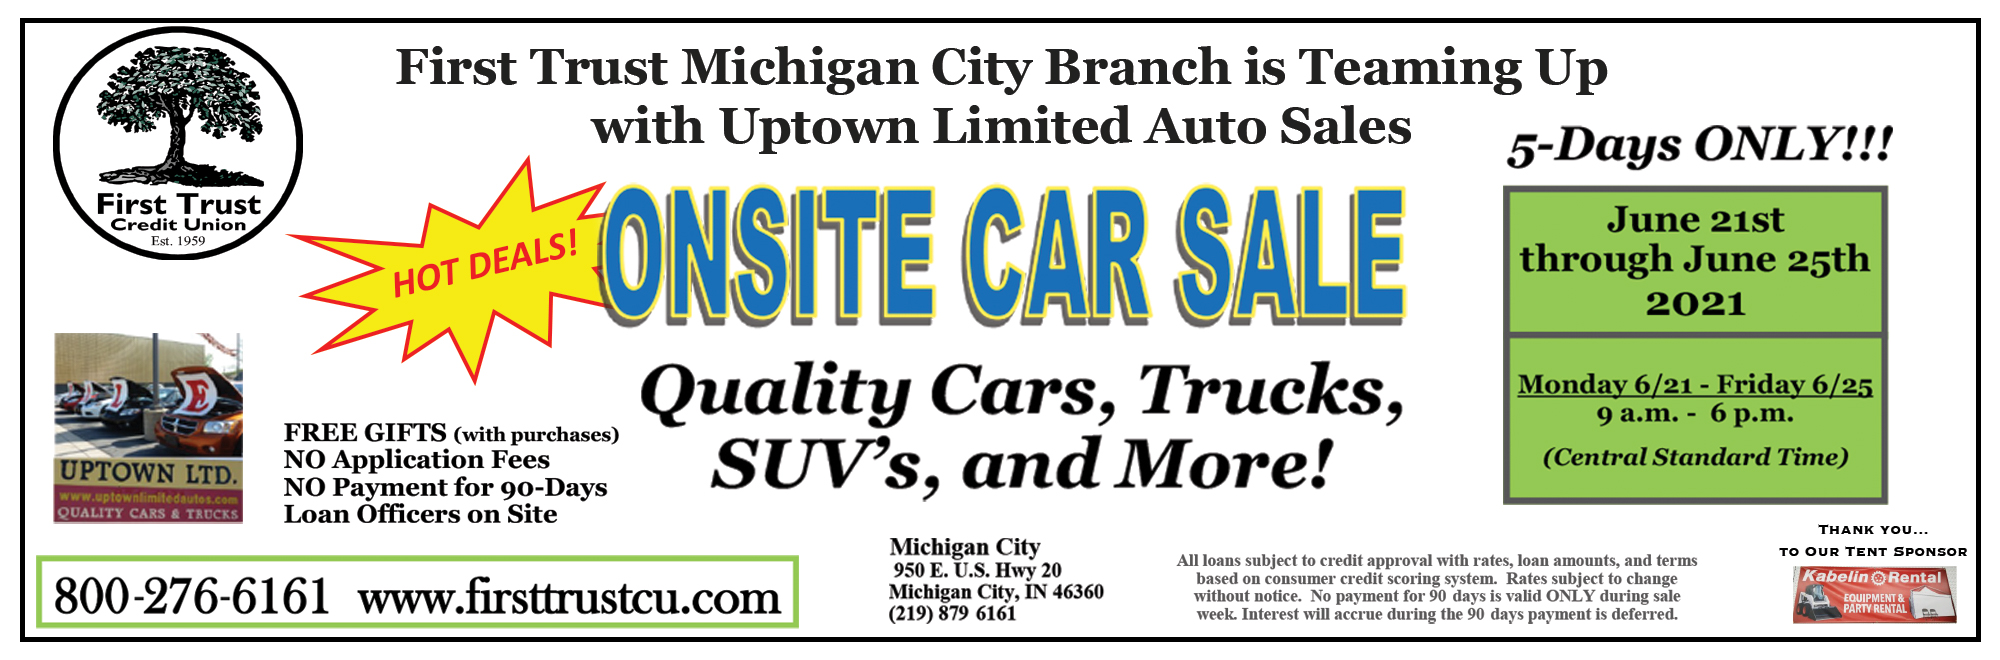 onsite car sale june 21st to june 25th